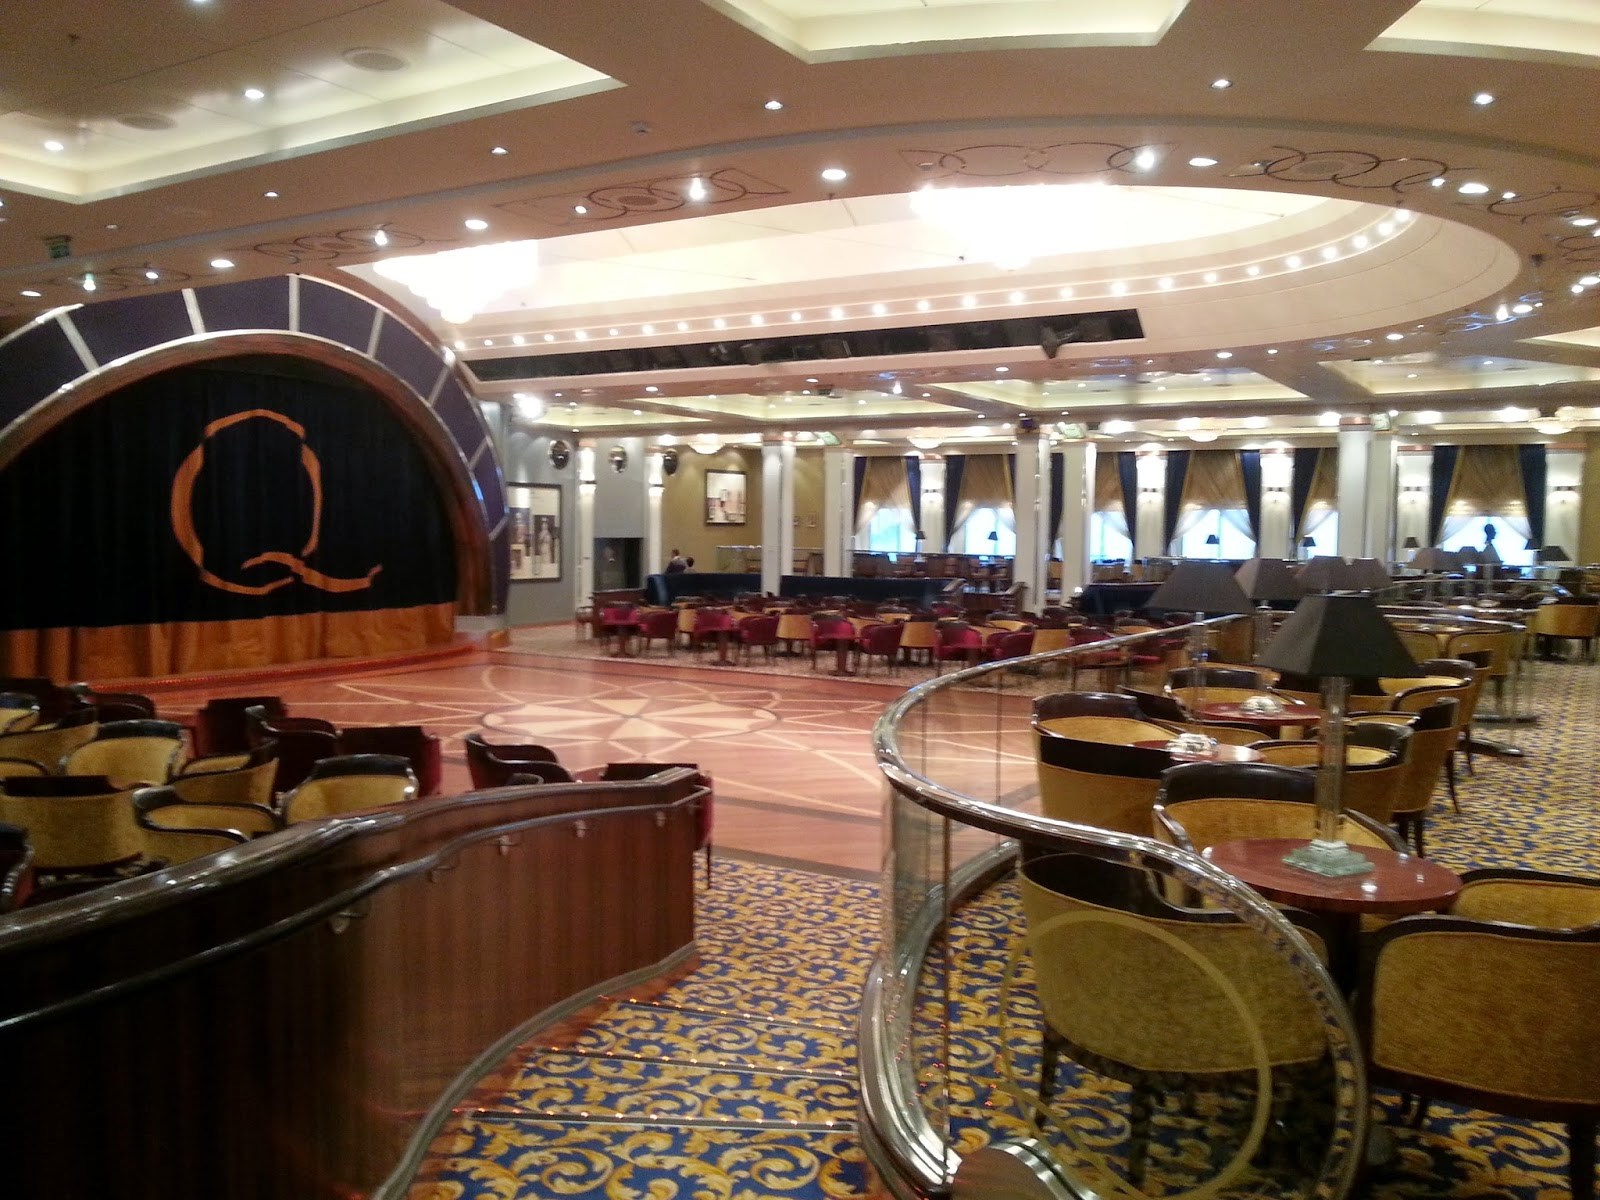 Queen Mary 2 (QM2) - Queens Room